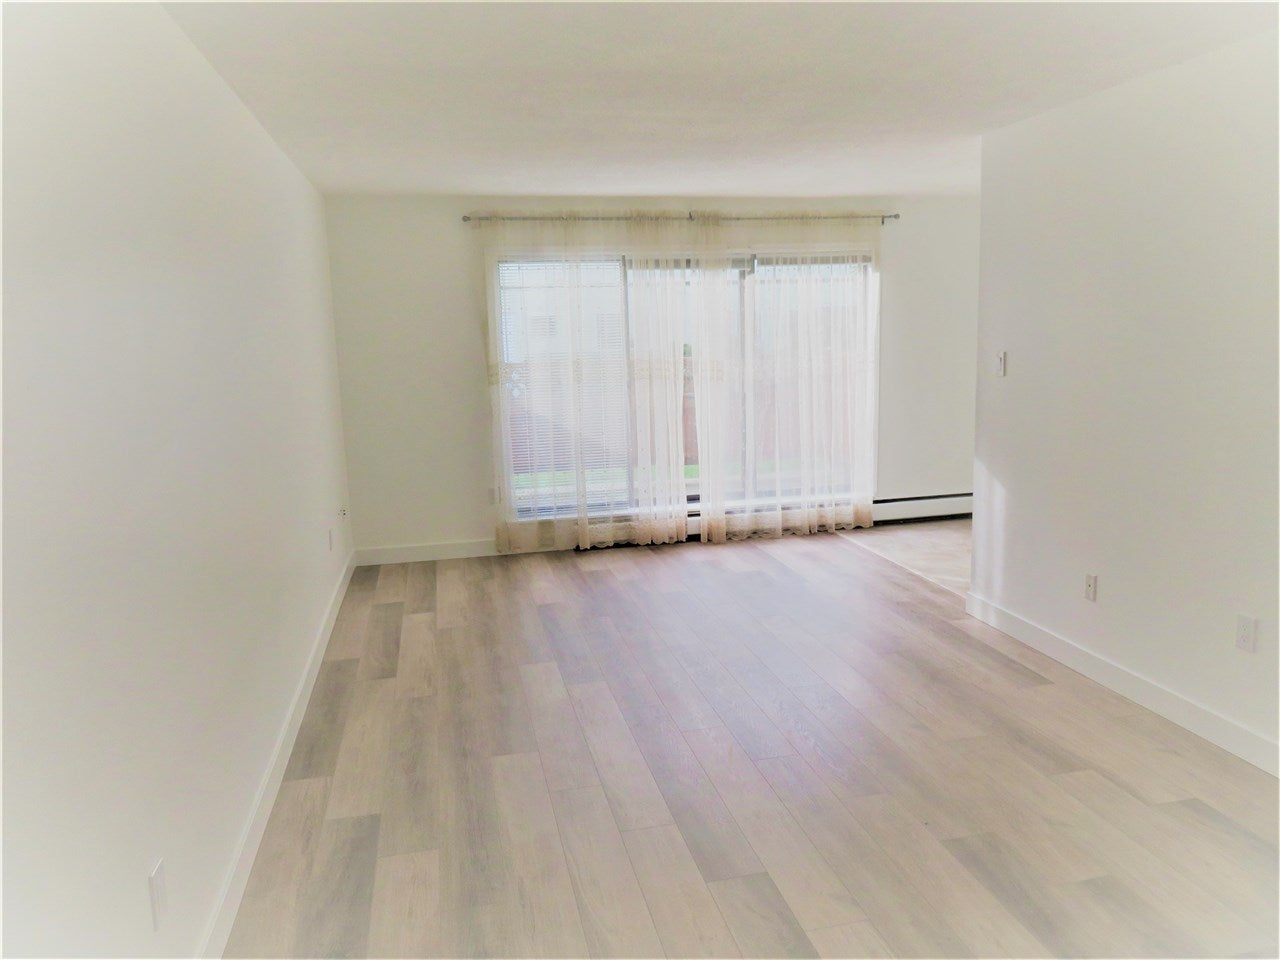 129 8051B RYAN ROAD - South Arm Apartment/Condo for sale, 2 Bedrooms (R2545312)